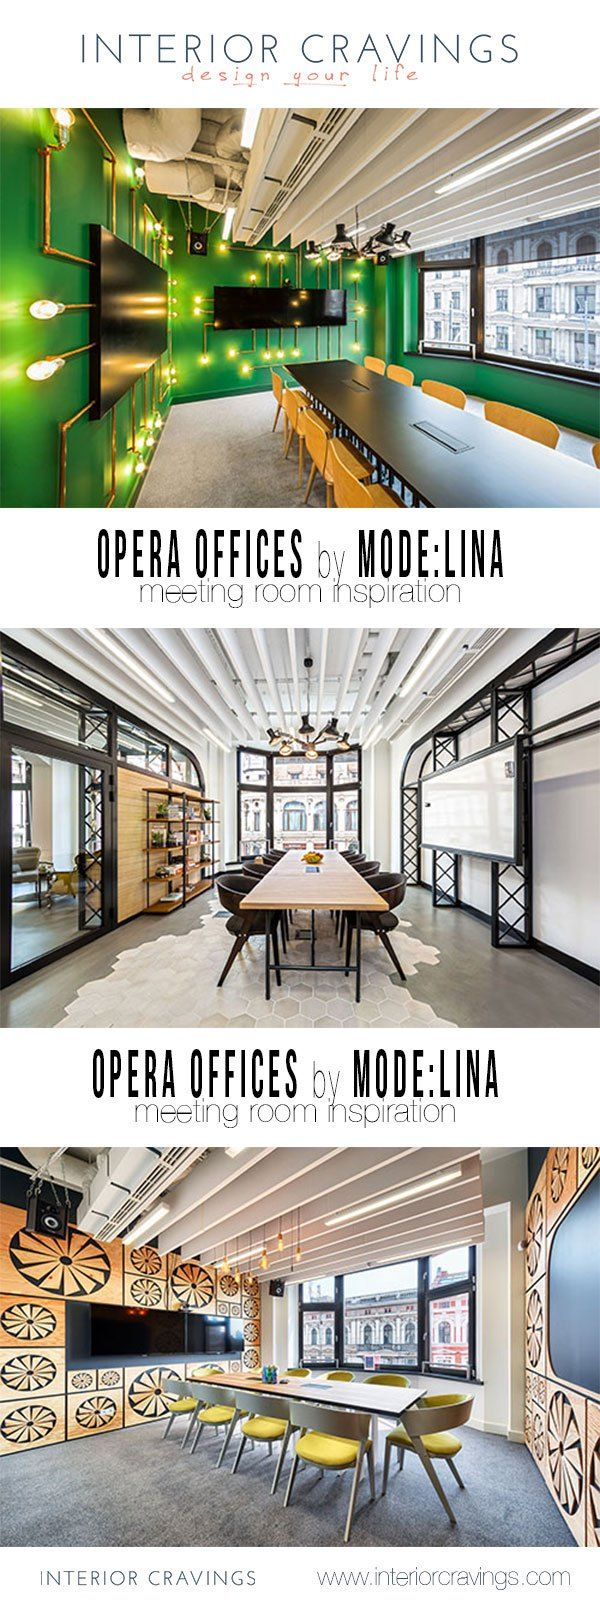 Office Room Design Software: OPERA SOFTWARE OFFICES By MODE:LINA